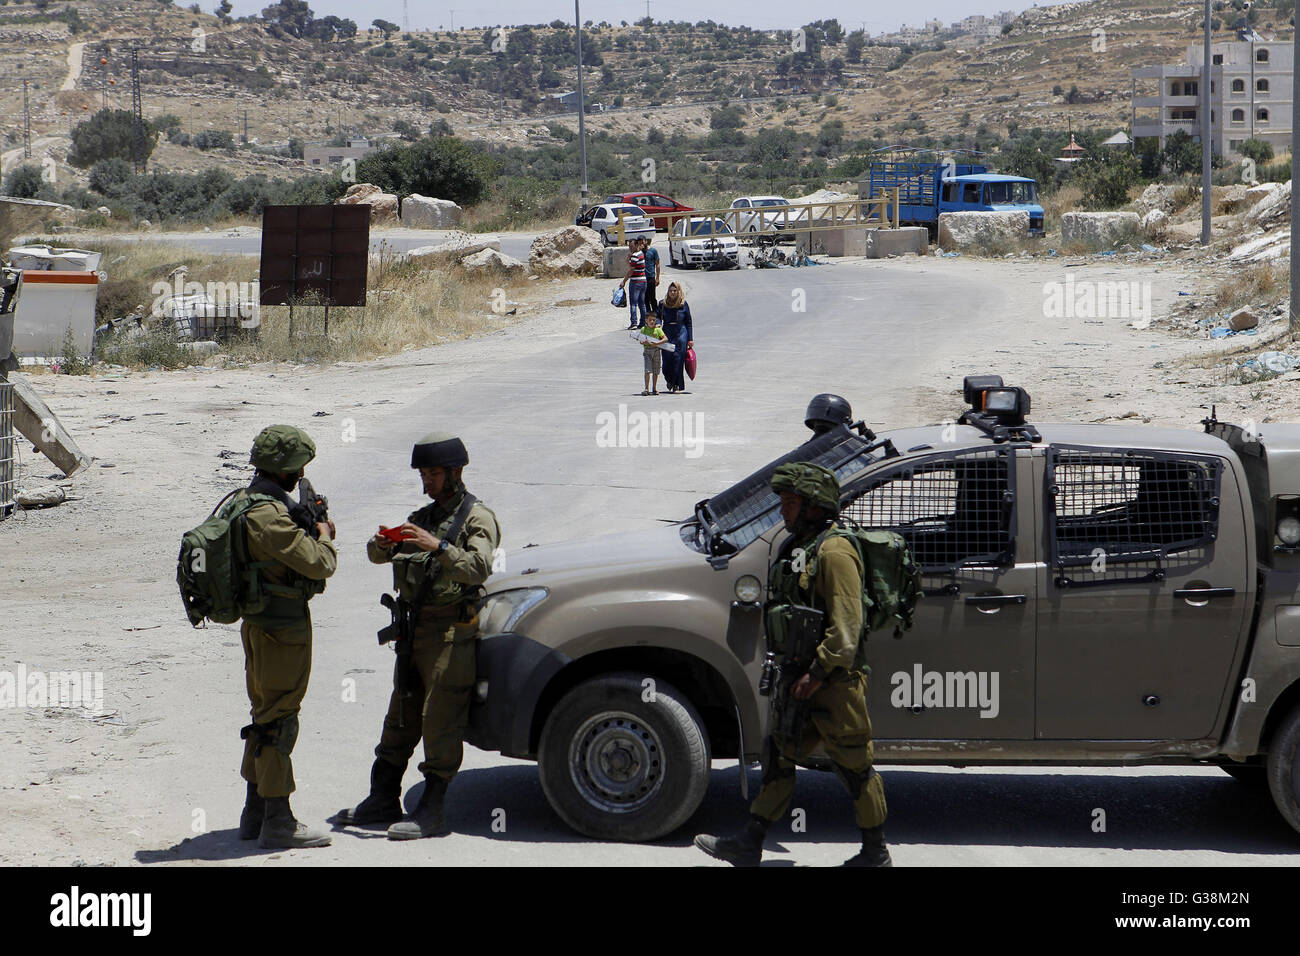 Hebron, West Bank, Palestinian Territory. 9th June, 2016. Israeli soldiers stand guard at the entrance of Yatta - Stock Image